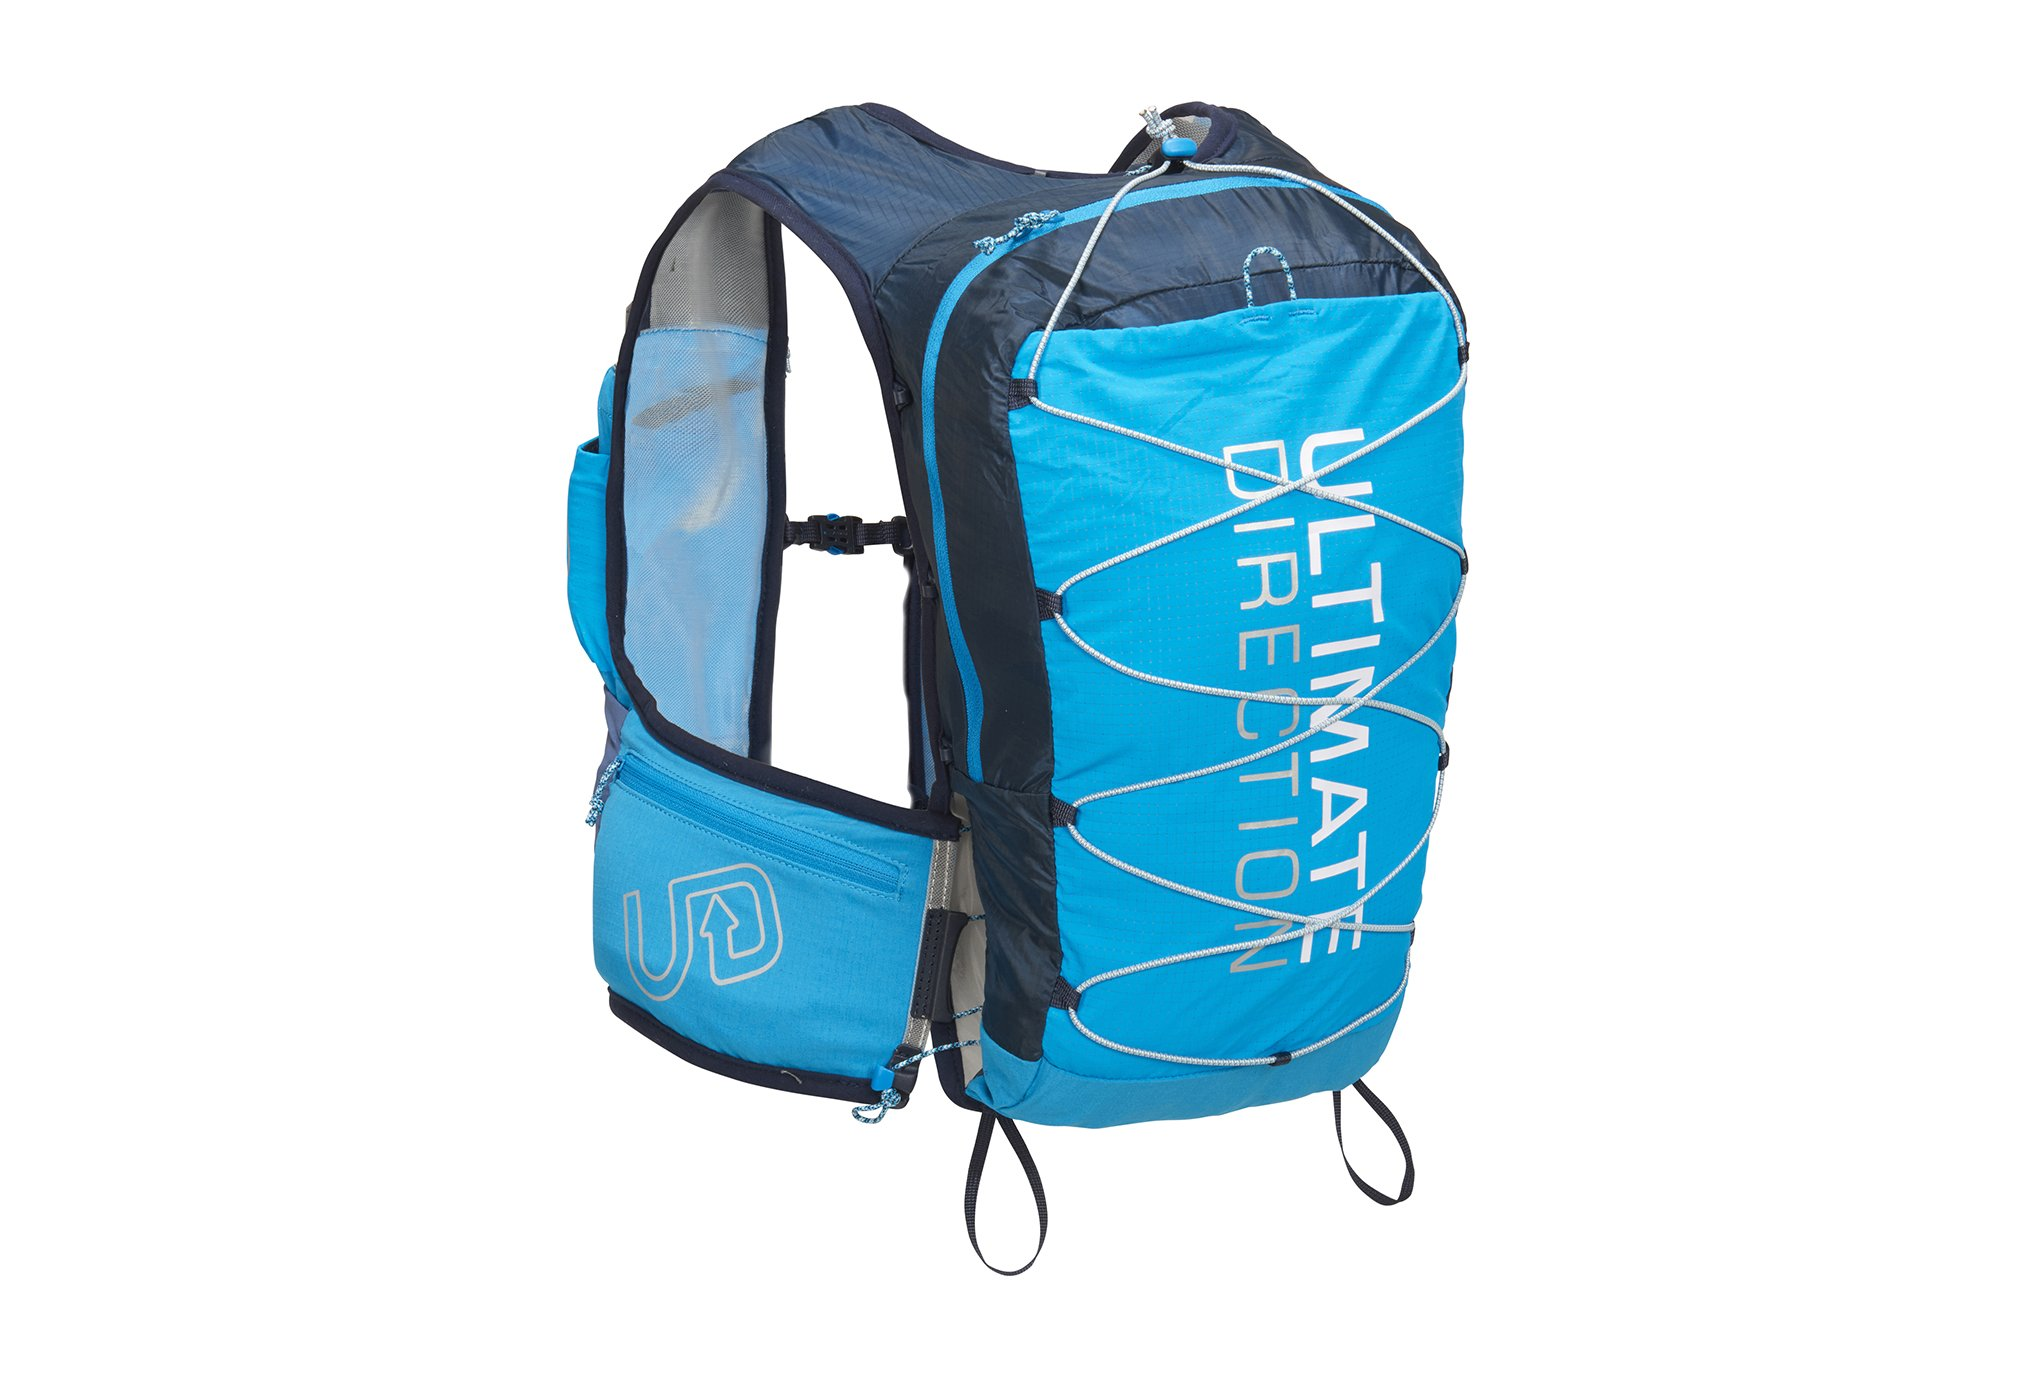 Ultimate Direction Mountain Vest 4.0 Sac hydratation / Gourde